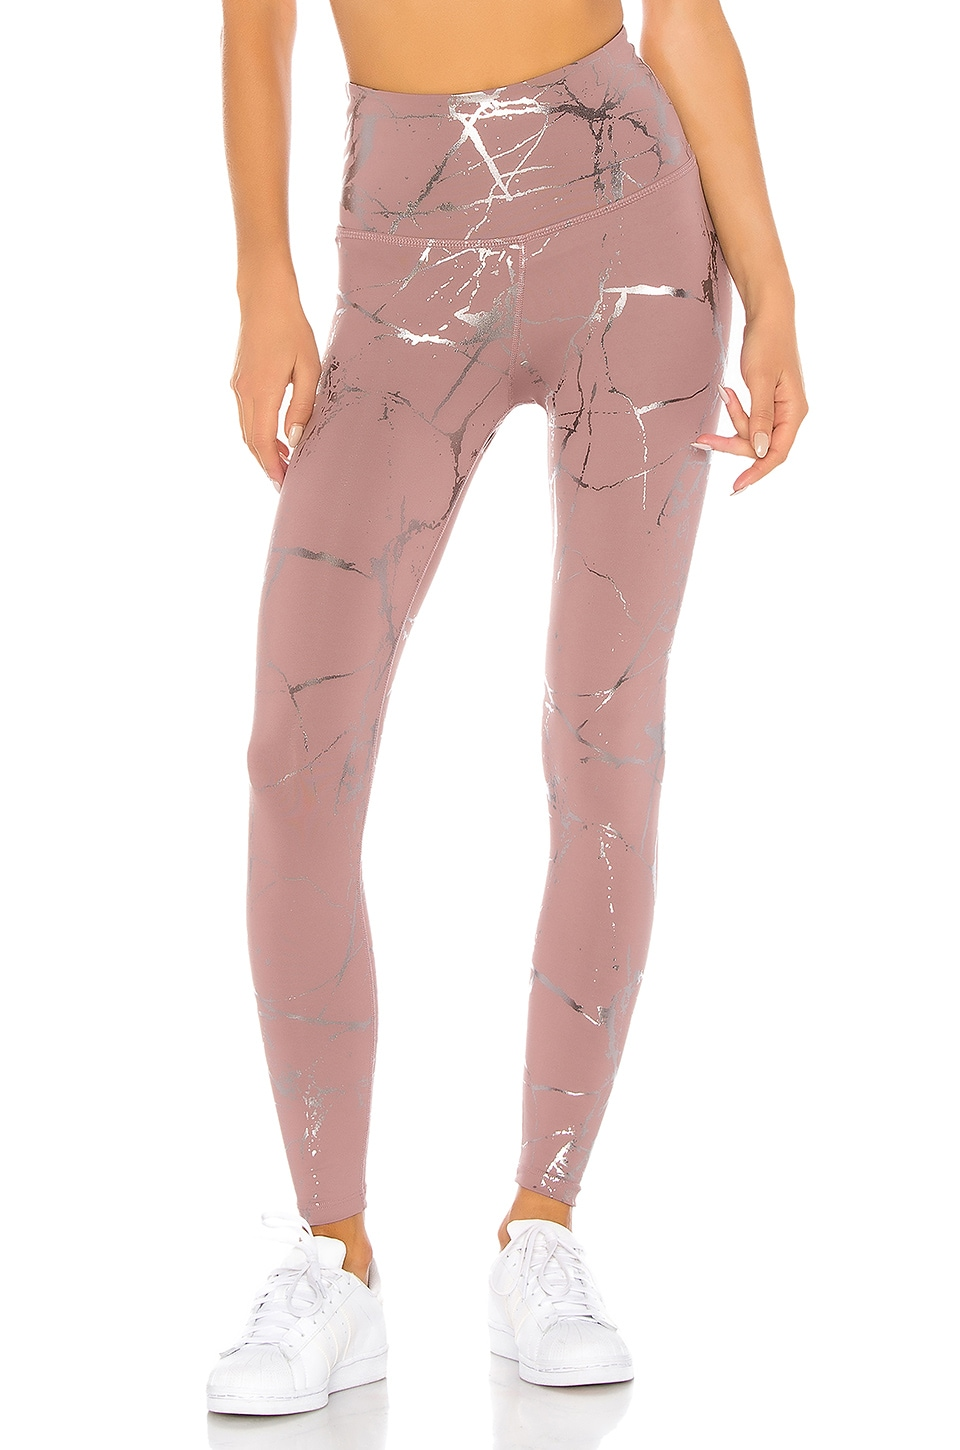 Beyond Yoga Lost Your Marbles High Waisted Midi Legging in Dusty Mauve & Shiny Gunmetal Marble